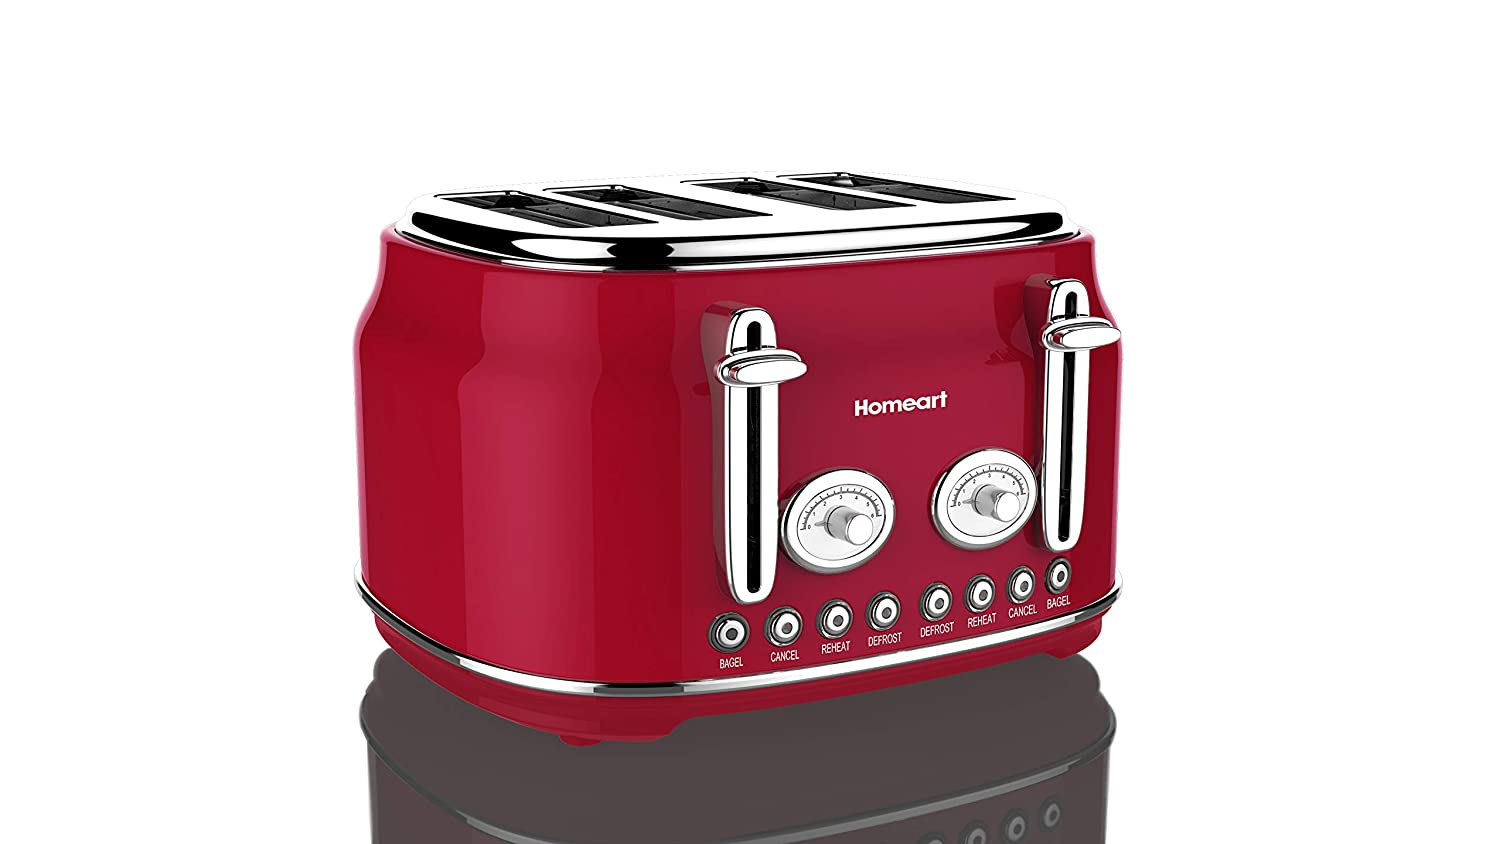 Artisan 4 Slot Toaster by Homeart | 2019 Best Electric Toaster with Multi-Function Toaster Options | Vintage Toaster Stainless Steel (Red)